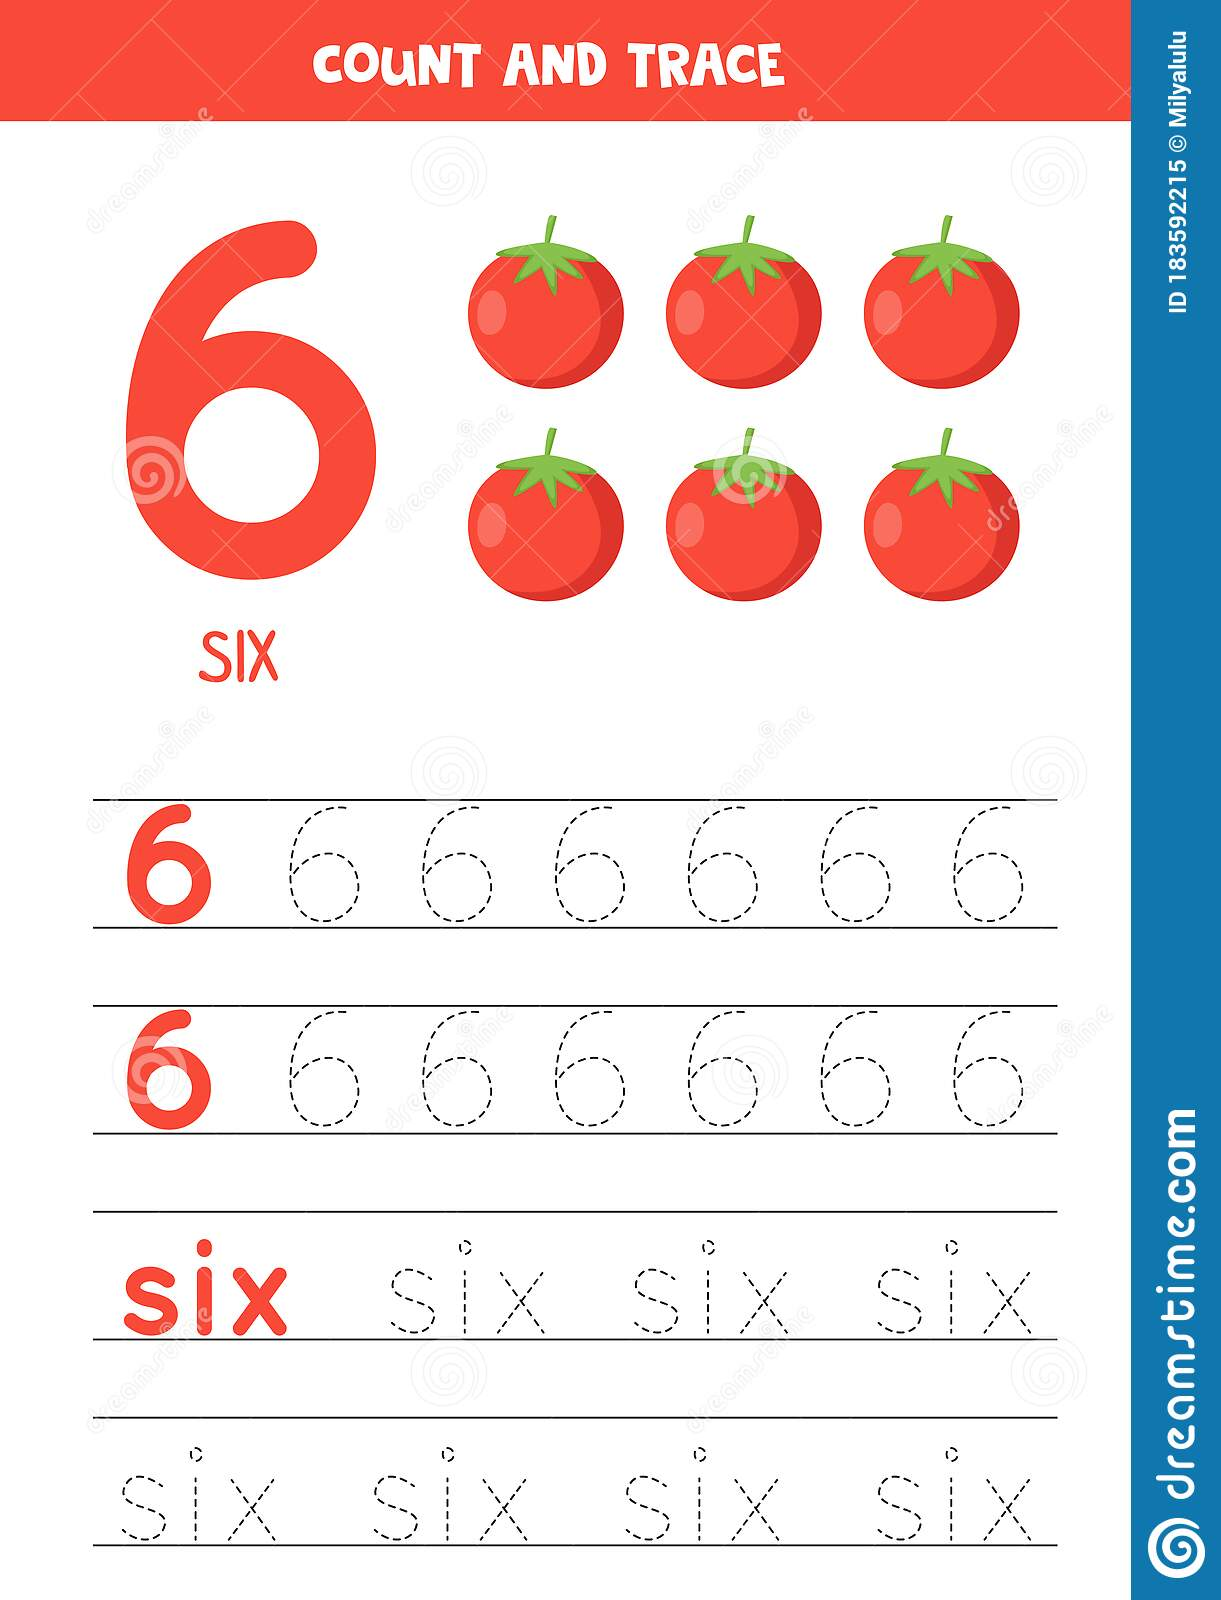 Worksheet For Learning Numbers And Letters With Cartoon